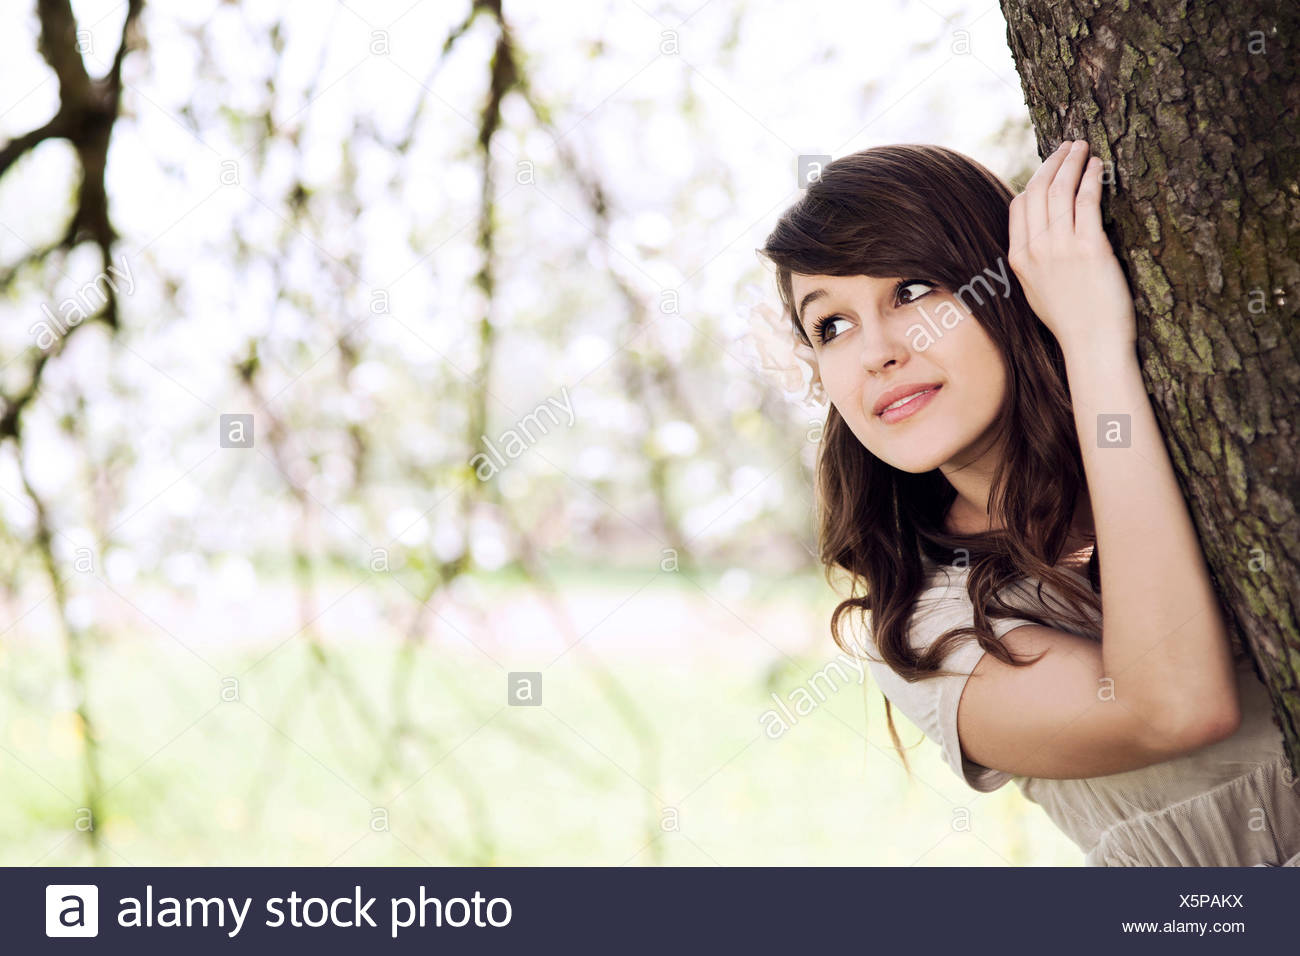 Beautiful young woman hiding behind tree trunk. Debica, Poland. - Stock Image